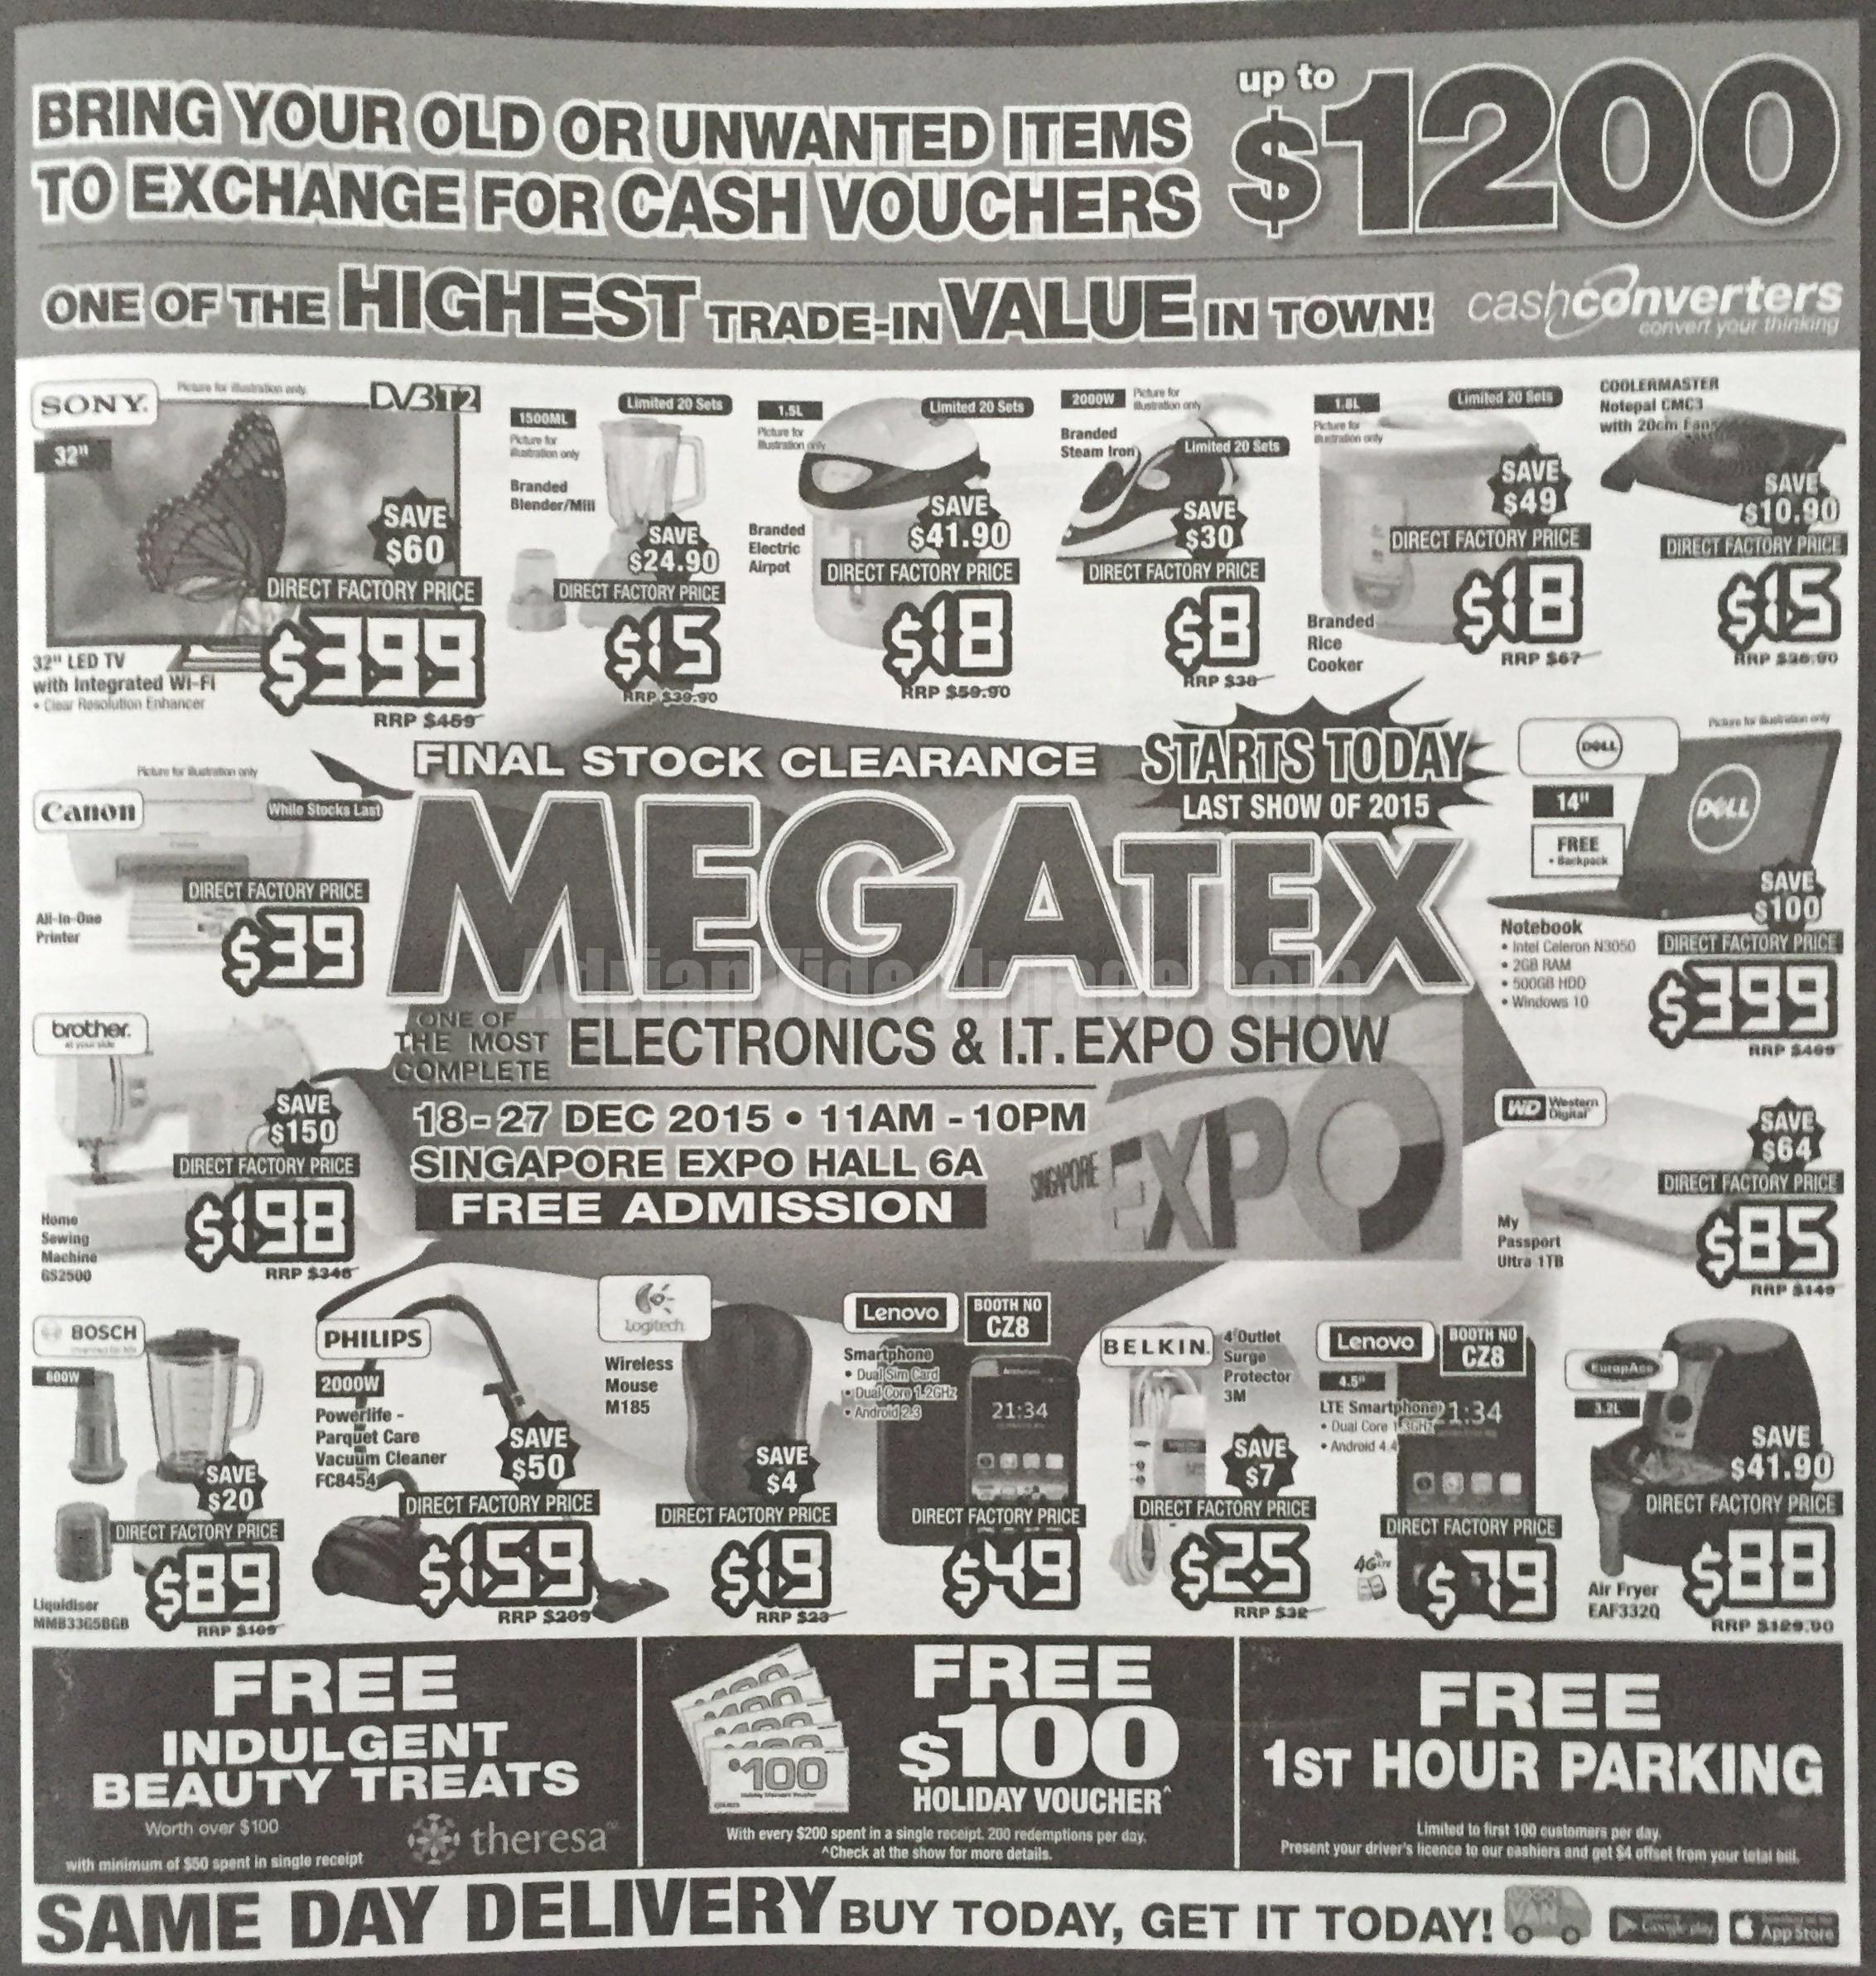 MEGATEX Electronics and IT Expo Show - December 2015 - pg1